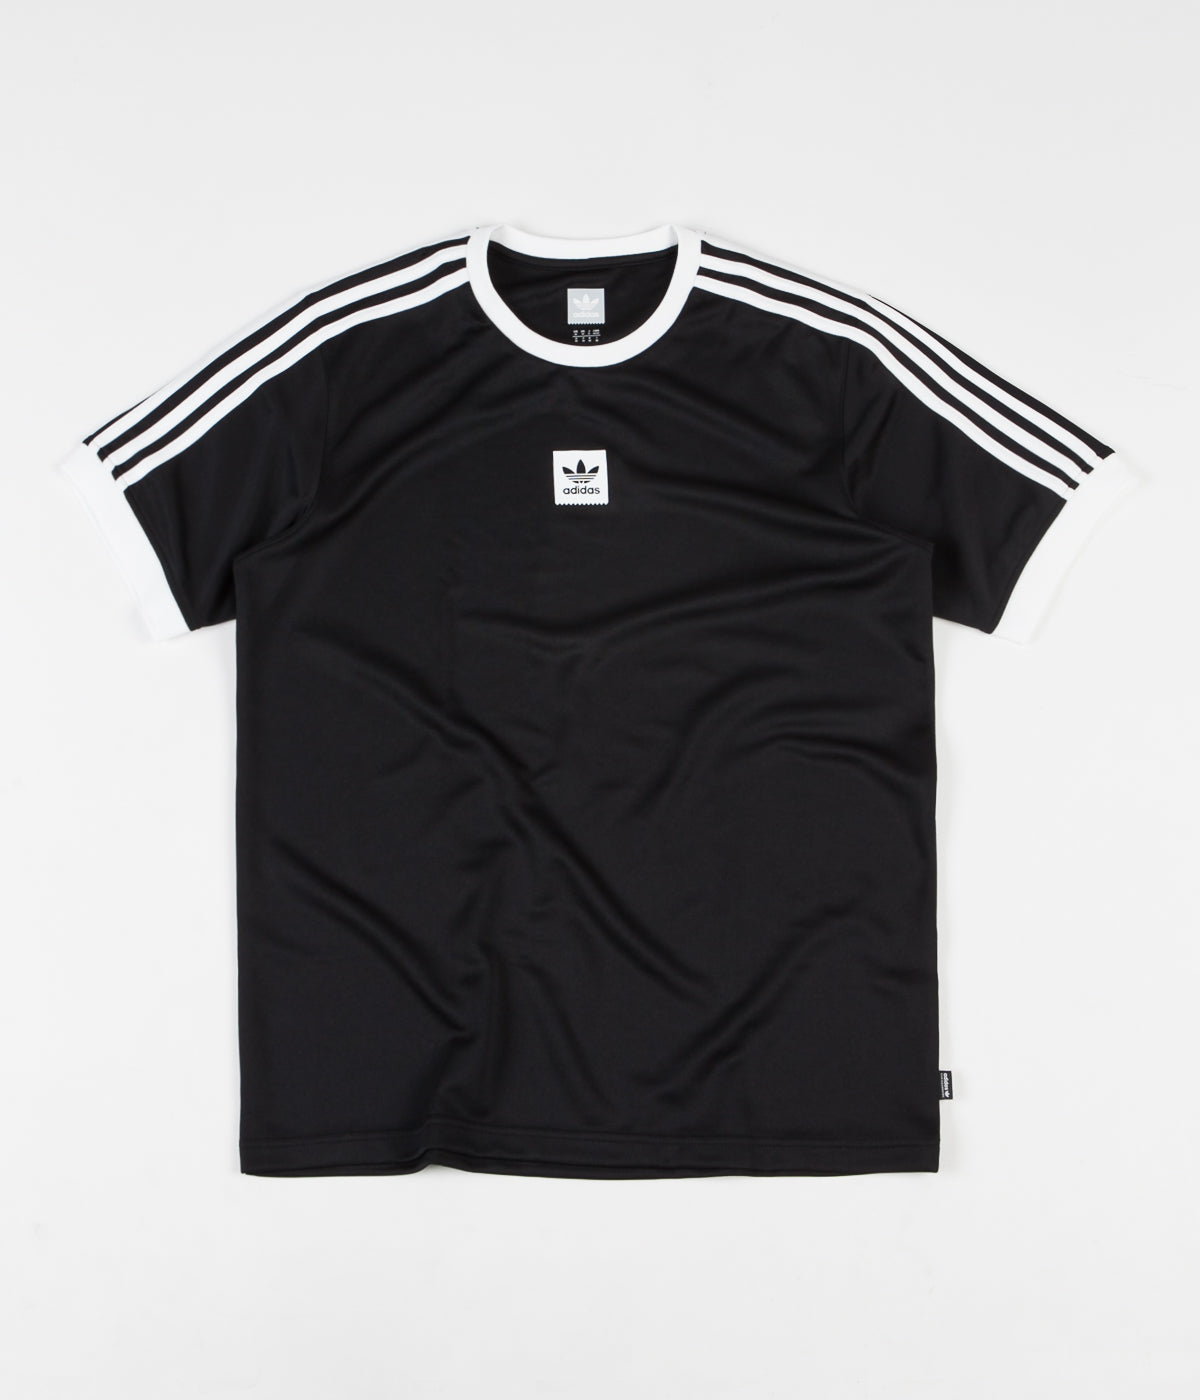 Adidas Club Jersey - Black / White